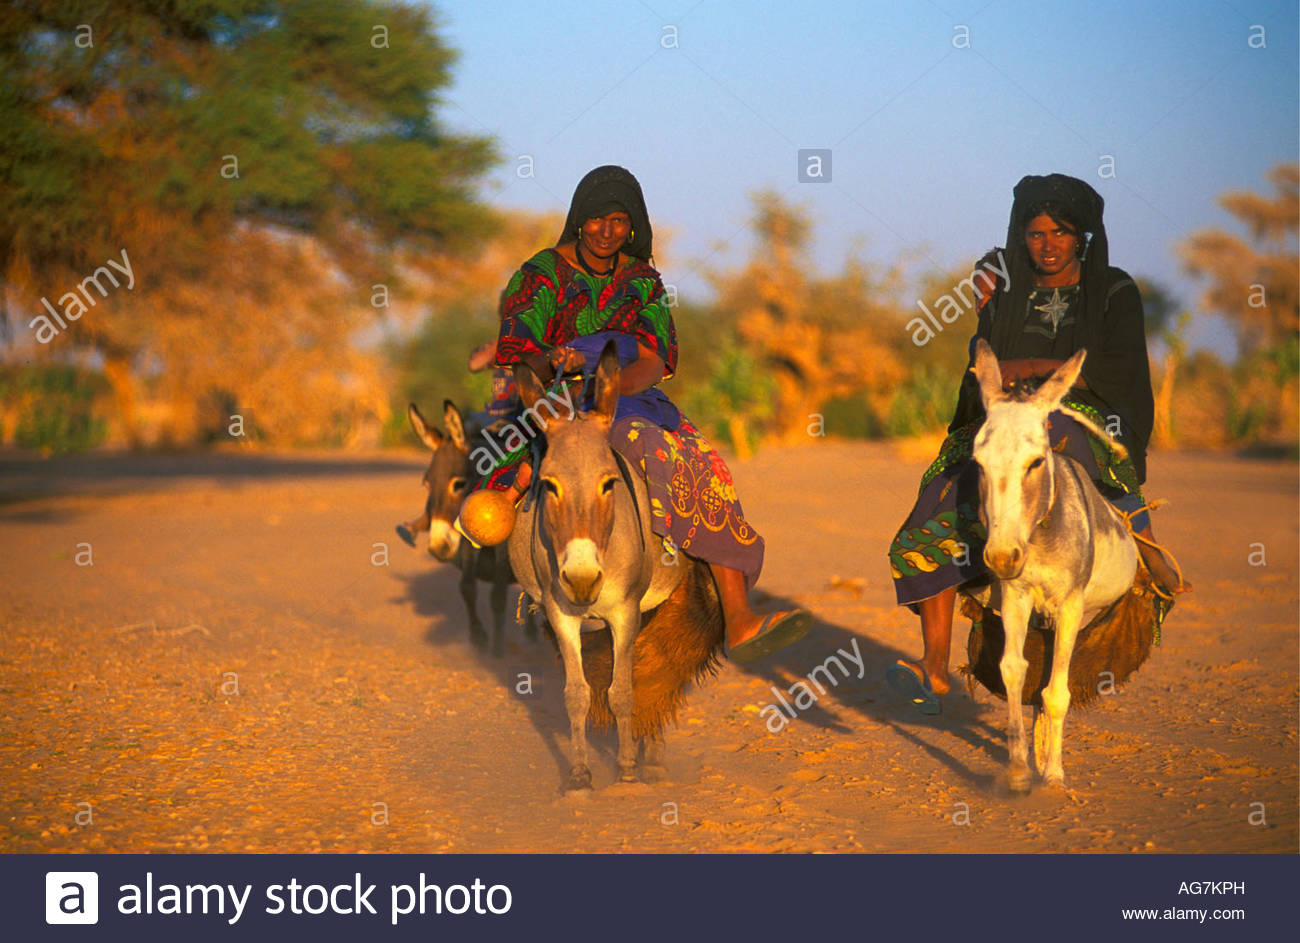 tuareg tribe The tuareg people are about 2 million nomadic people who live across the sahara desert, including in the north african countries of mali, niger, libya, algeria and chad the tuaregs are part of the berber group of people, and they are largely muslim much of tuareg art is in the form of jewelry .